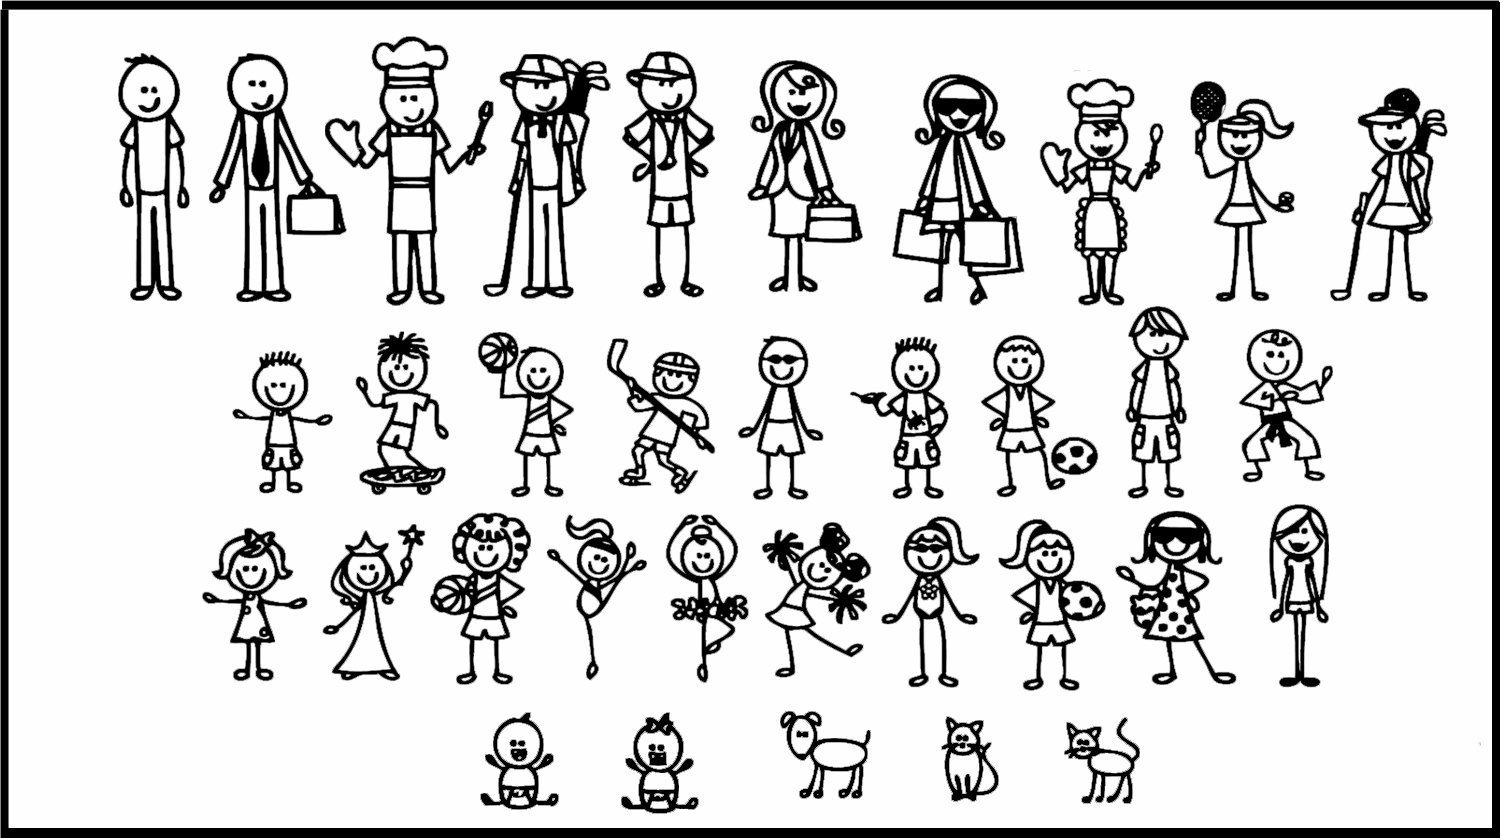 Buy 34 STICK FIGURE FAMILY Your Stick Figures can be